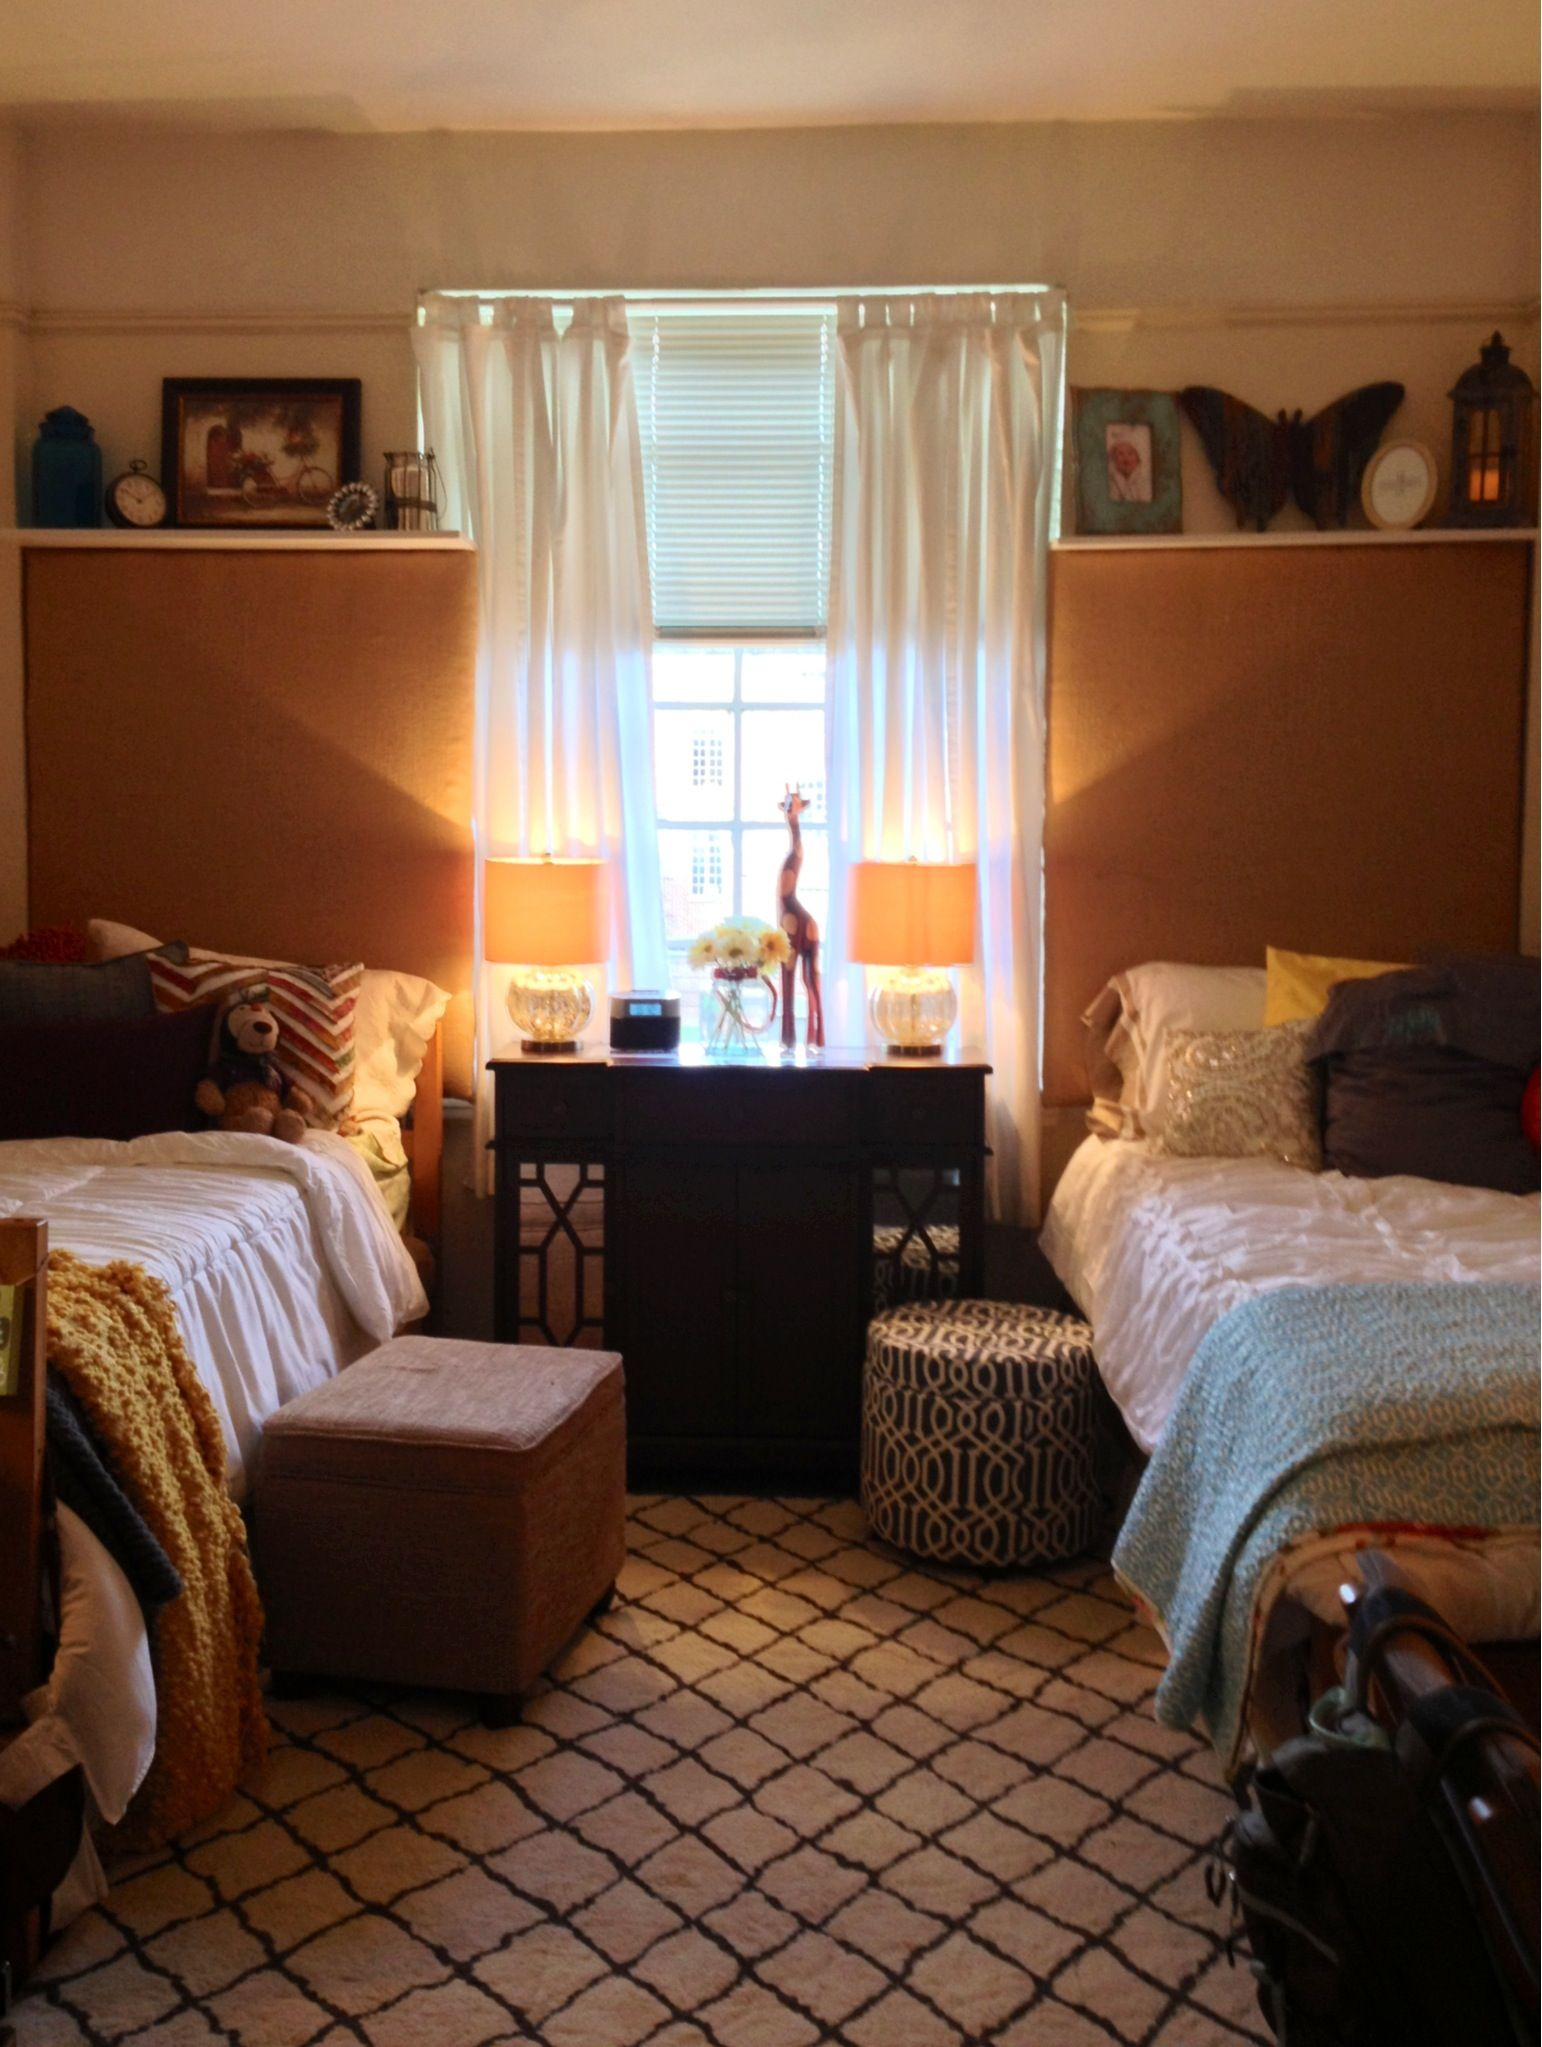 Hull Hall U2022 Mississippi State University U2022 College Dorm Room Part 60